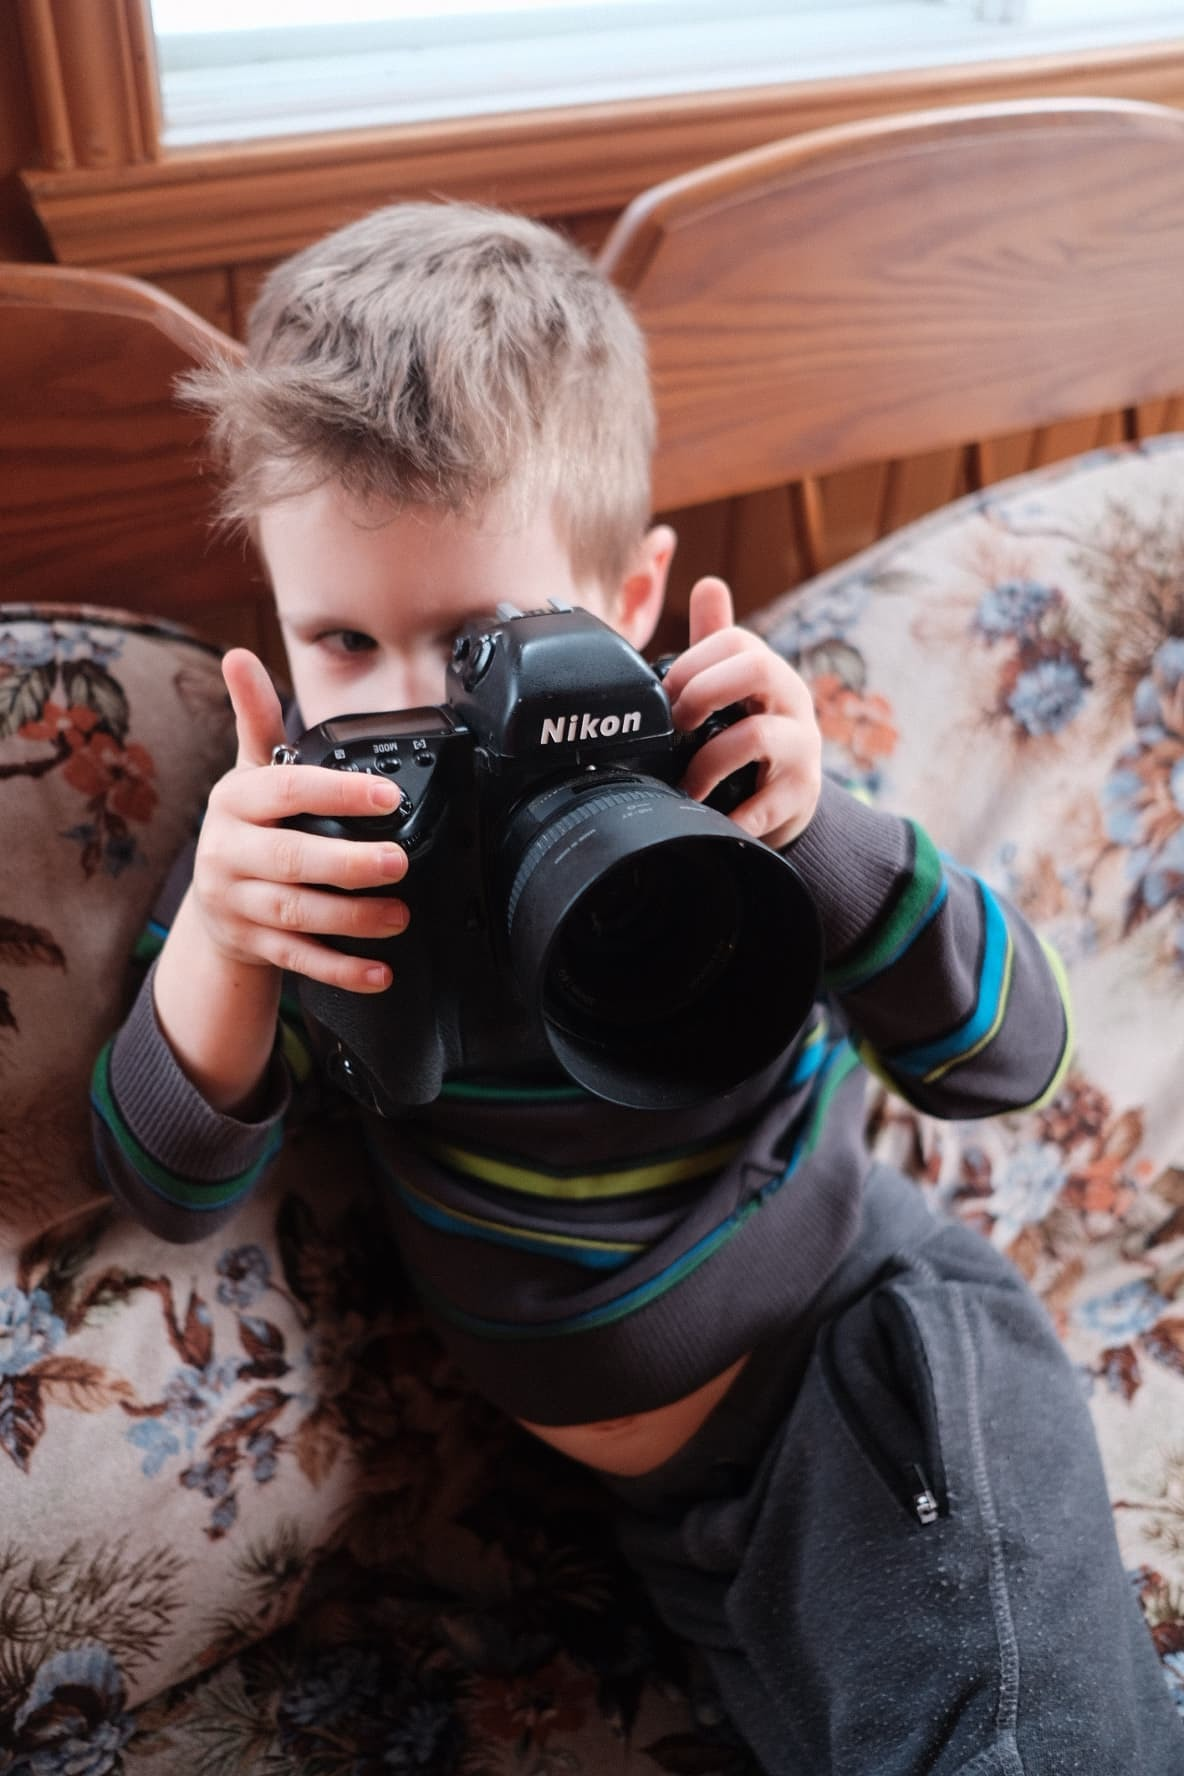 Nephew having fun with the Nikon F5. Taken with the 23mm f/2.0 Fuji wide open.